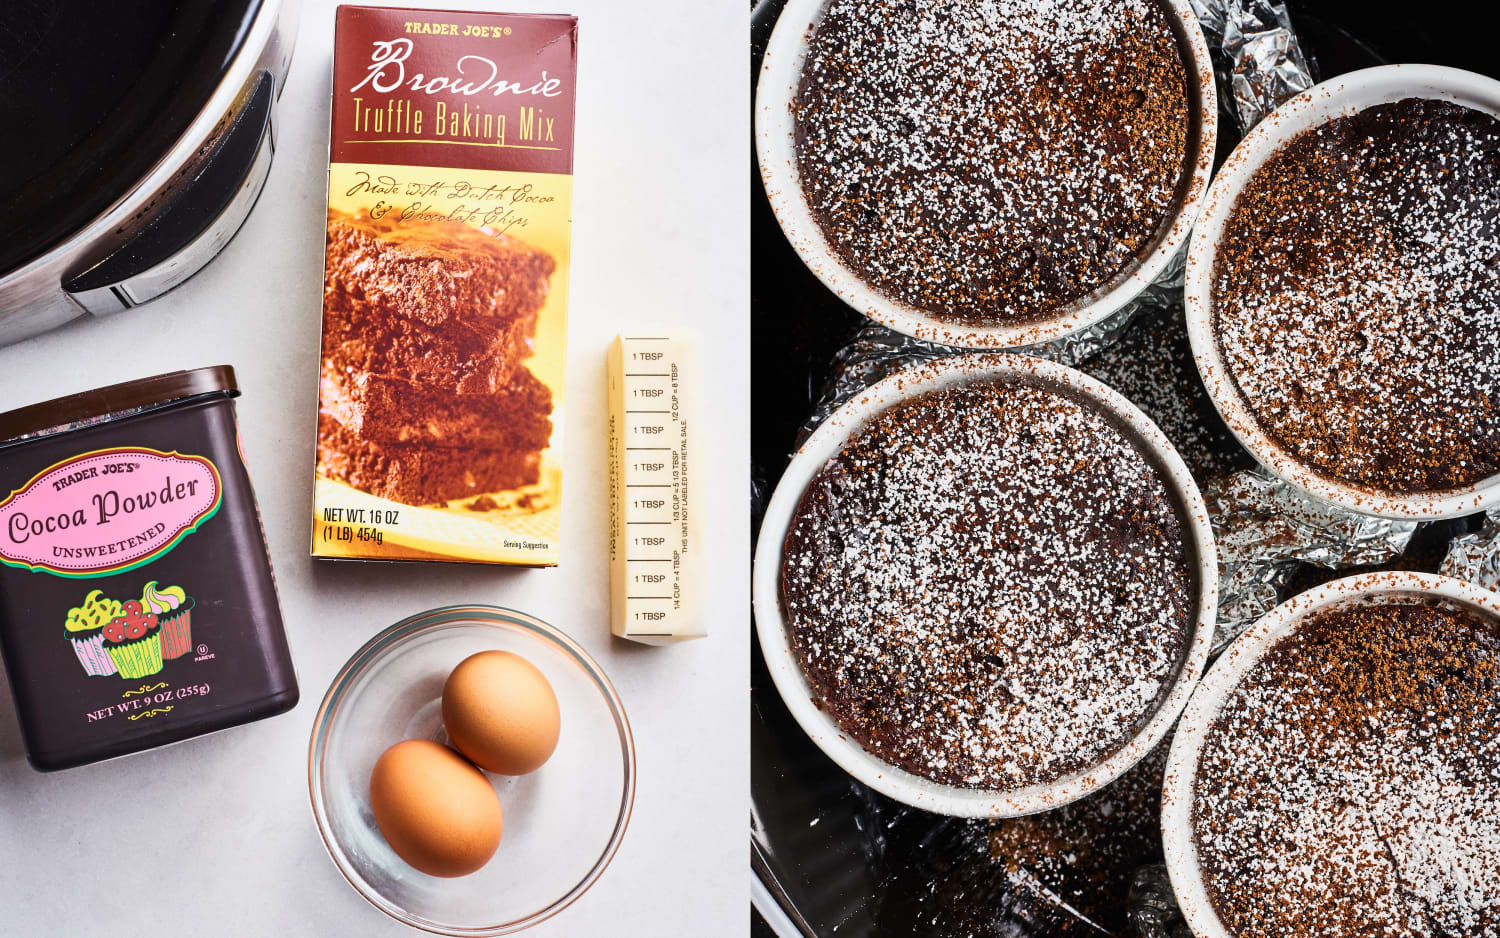 Slow Cooker Cakes from Trader Joe's Are Impossible to Mess Up